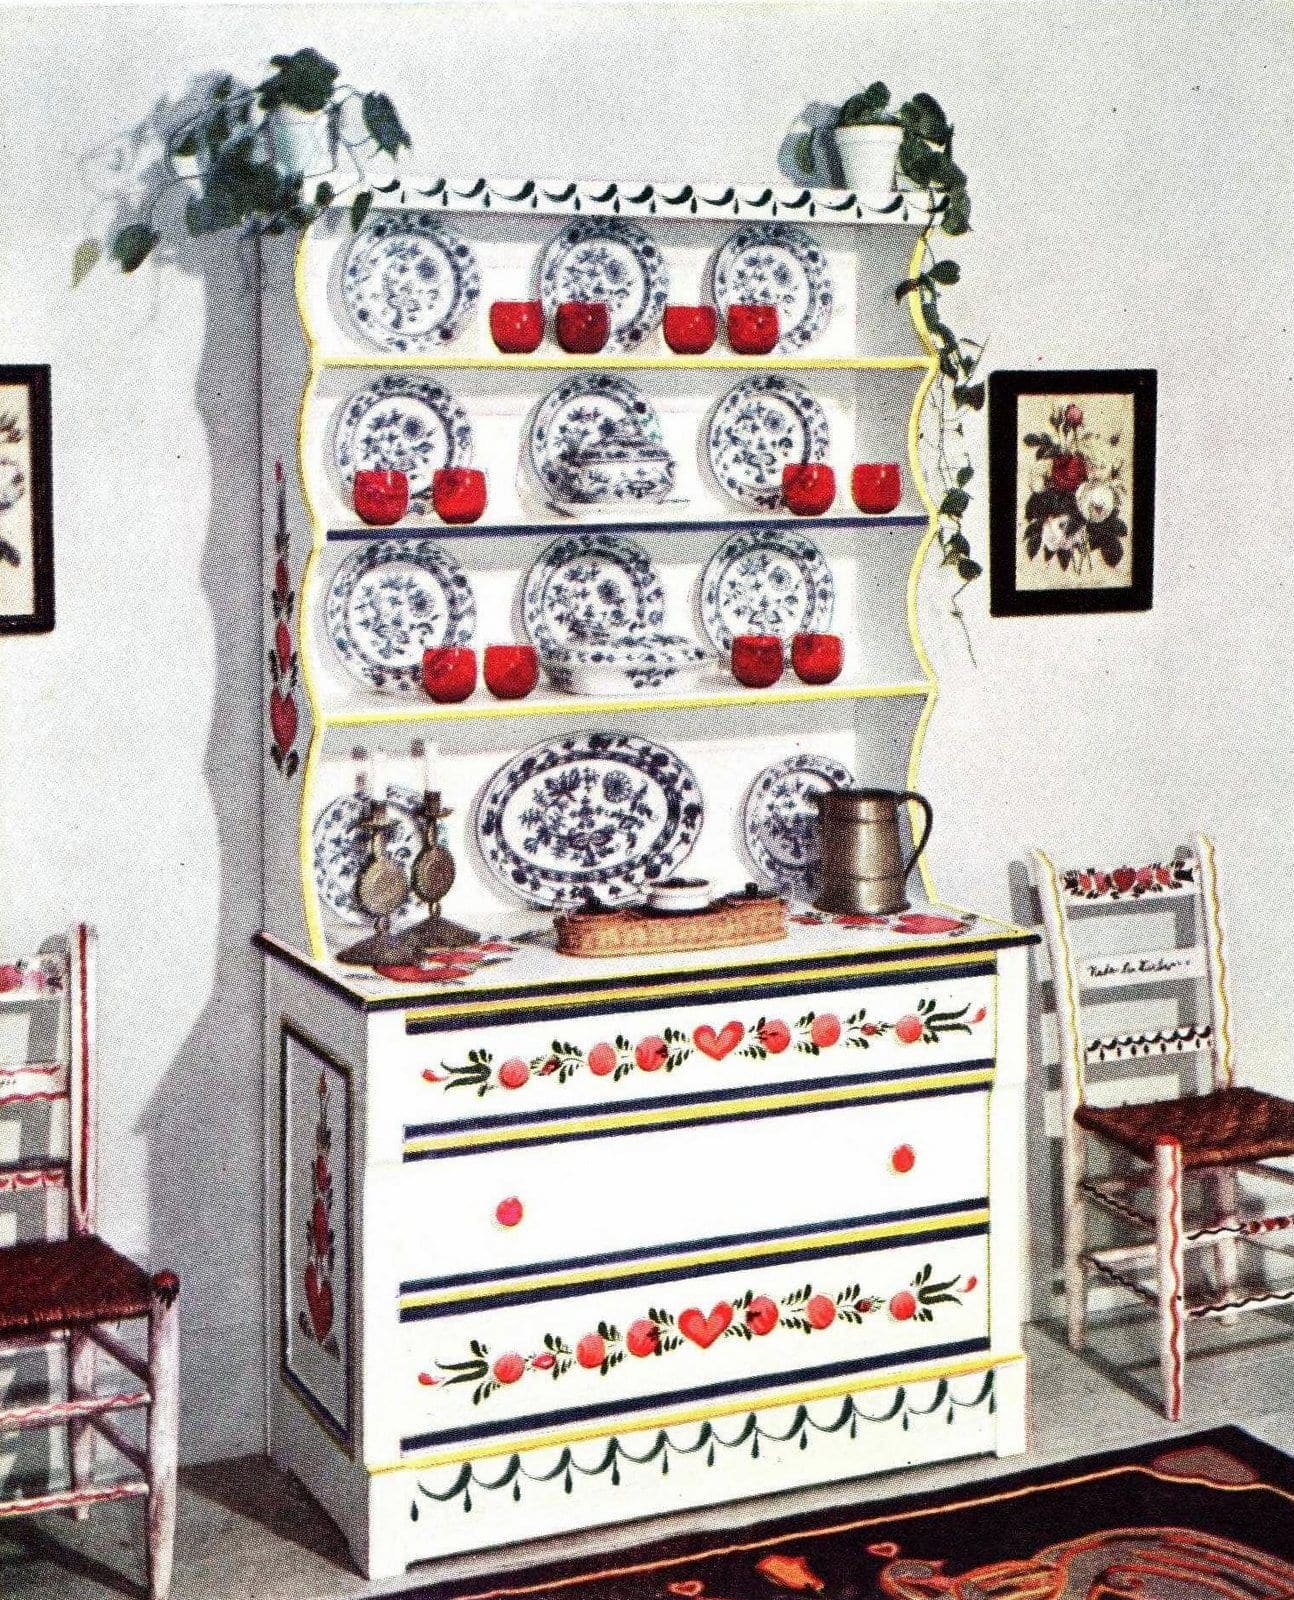 Old-fashioned Welsh dresser with traditional Americana paint artwork by Peter Hunt